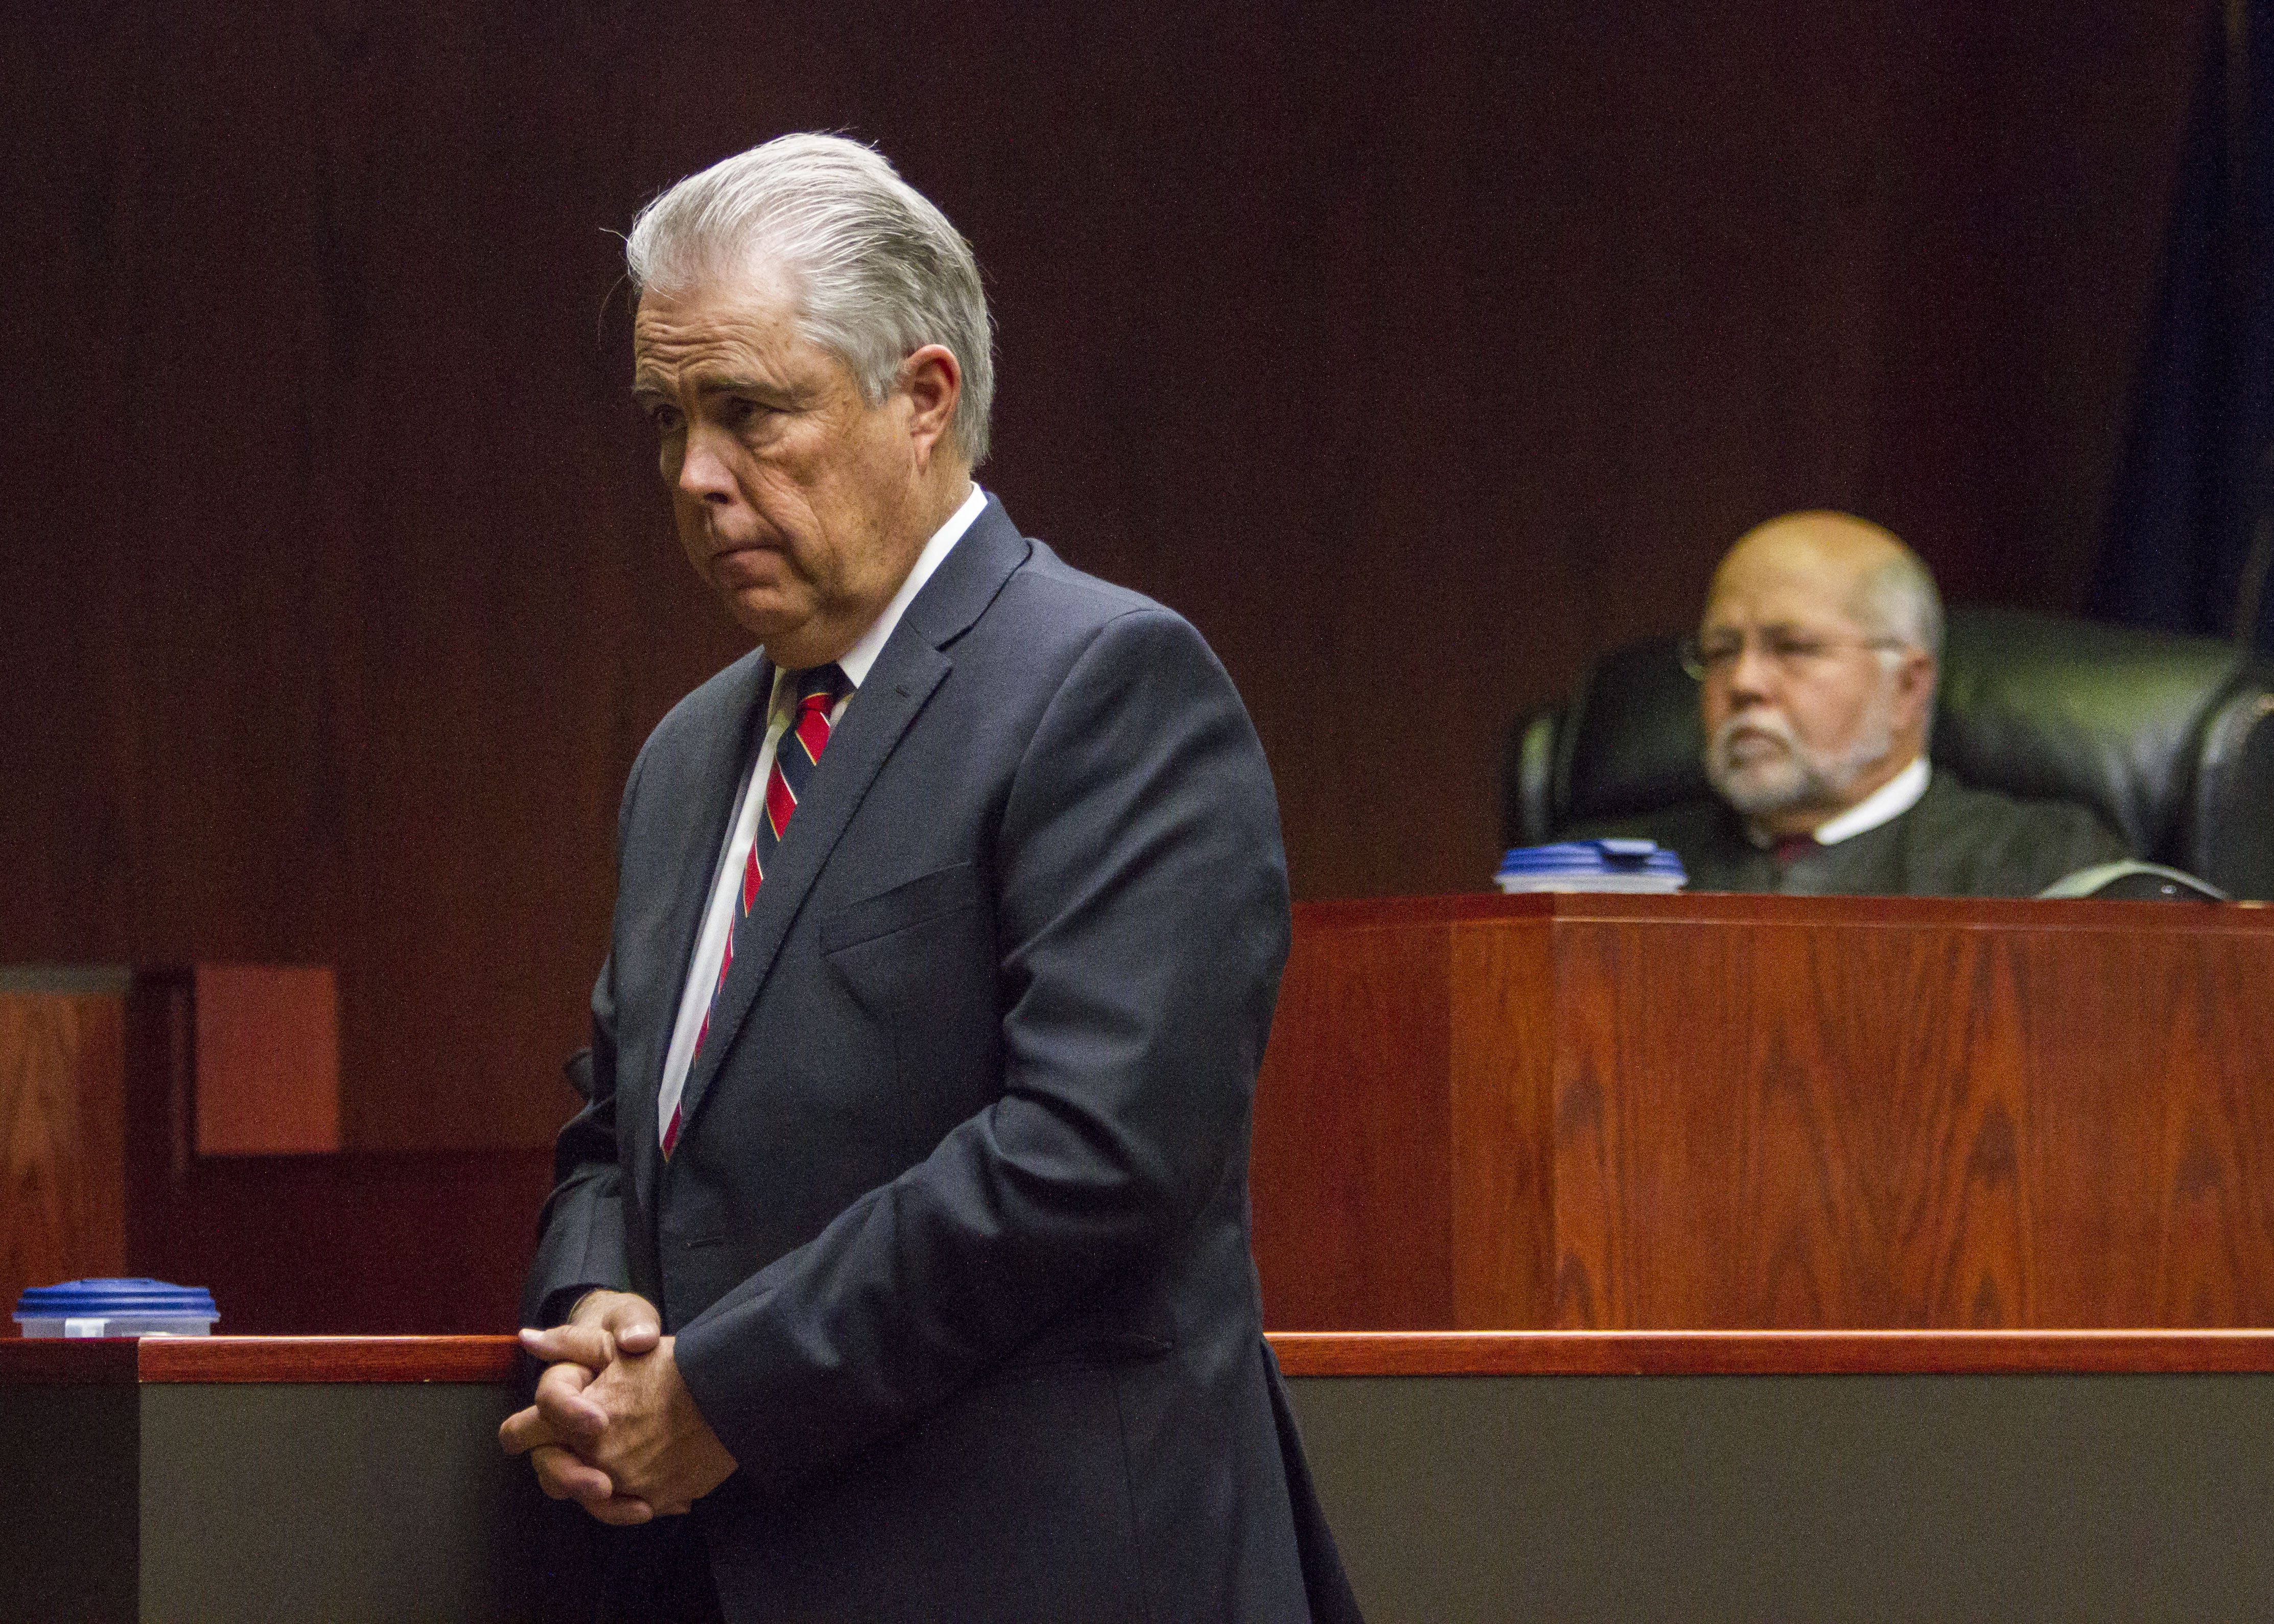 Douglas Terry, a defense attorney, provides an opening statement to the jury during the State of Utah v. Sorensen trial at the Fifth District Court in Cedar City, Utah, Oct. 19, 2016 | Photo by 5th District Court video pool, St. George / Cedar City News